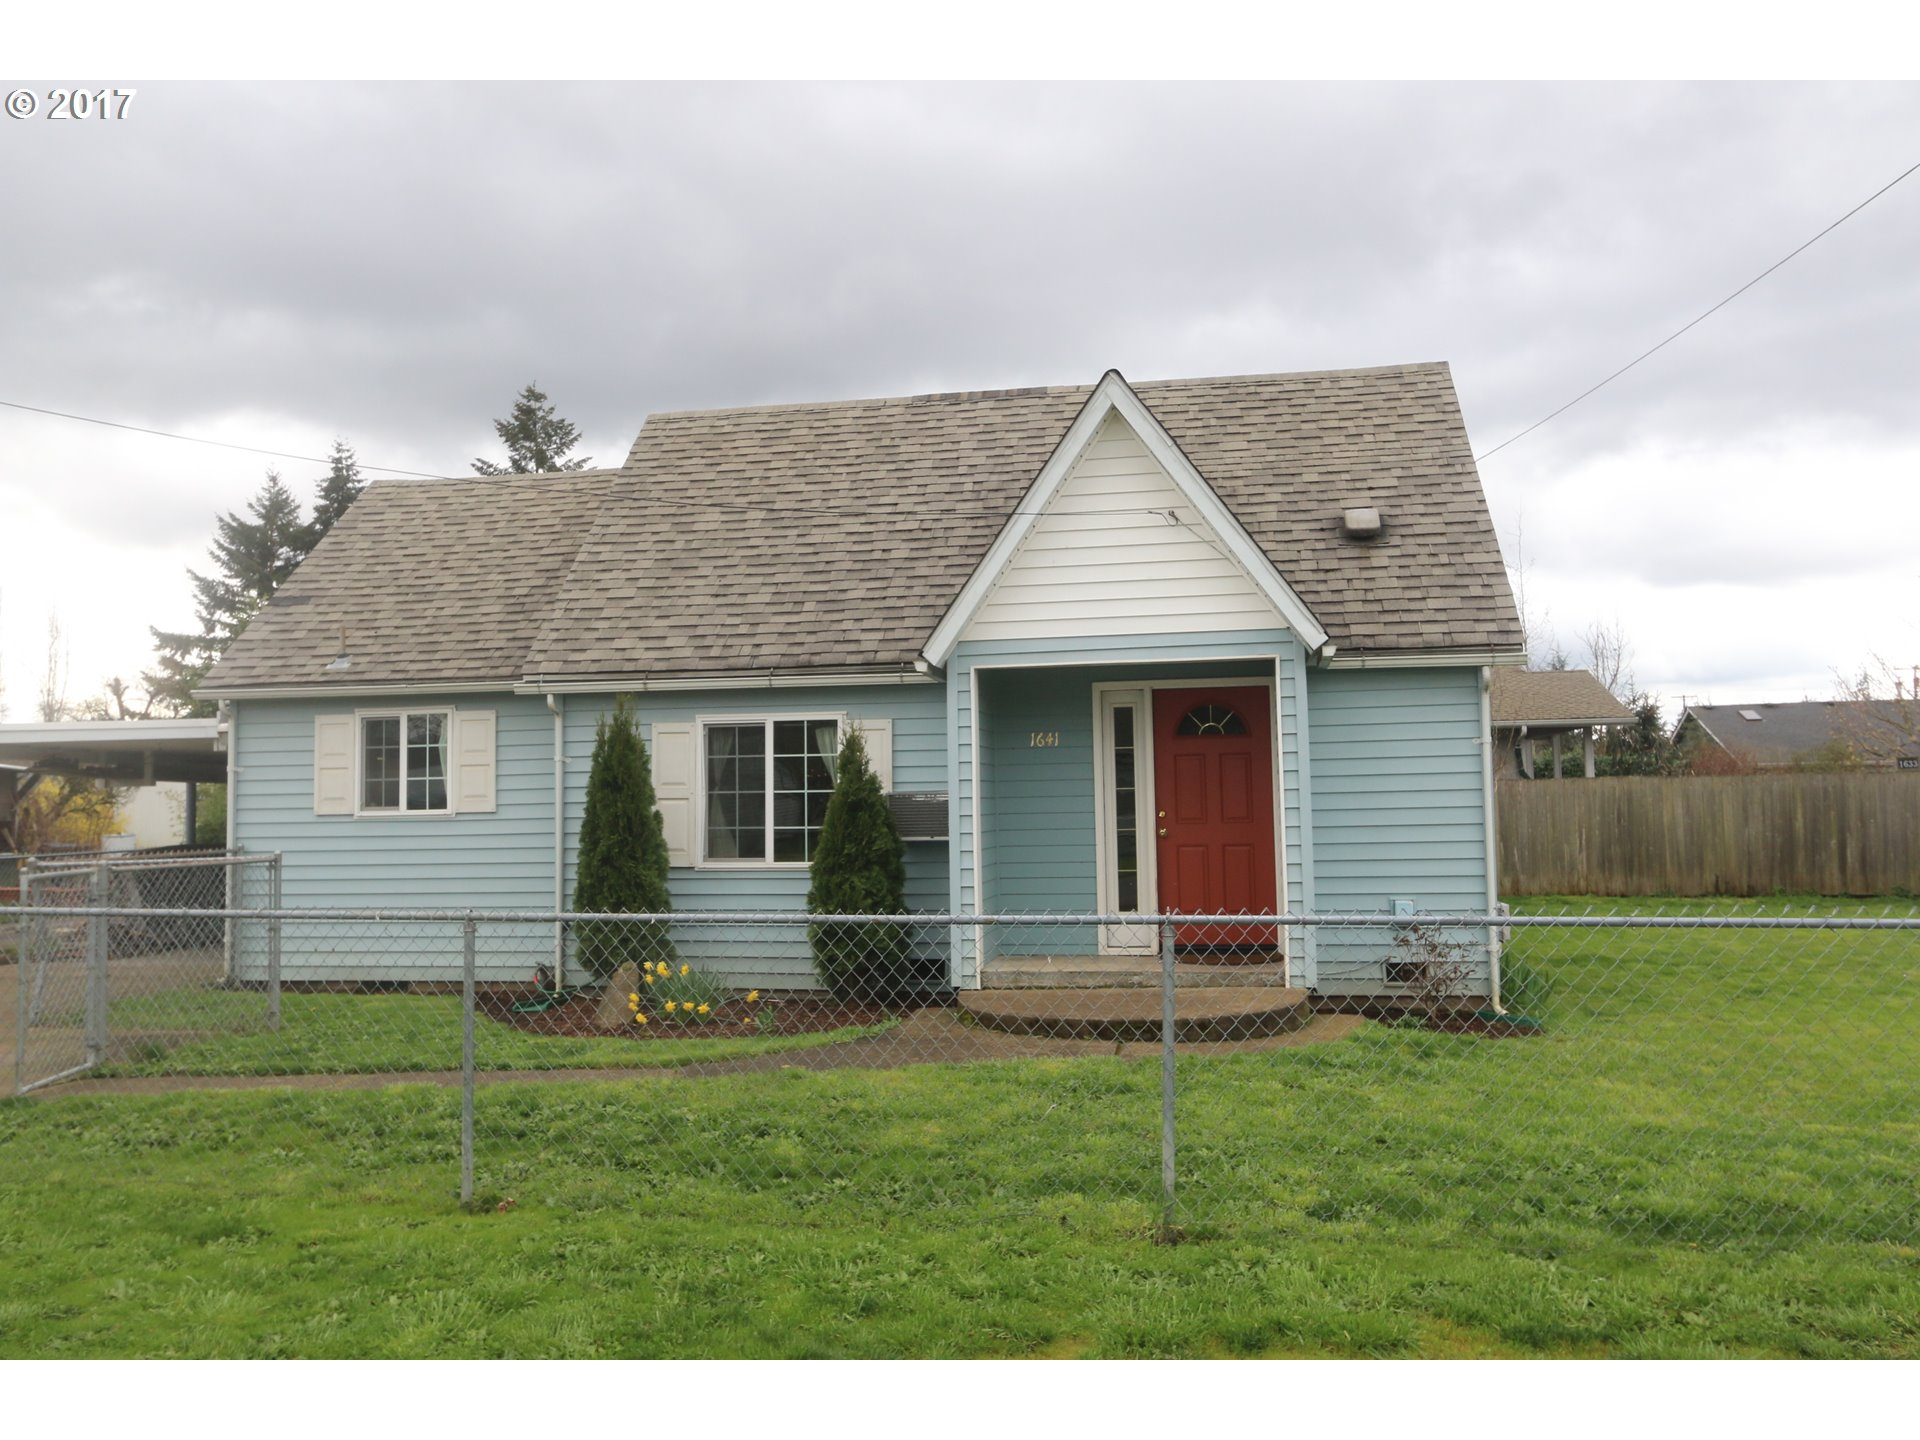 1641 S ST, Springfield, OR 97477